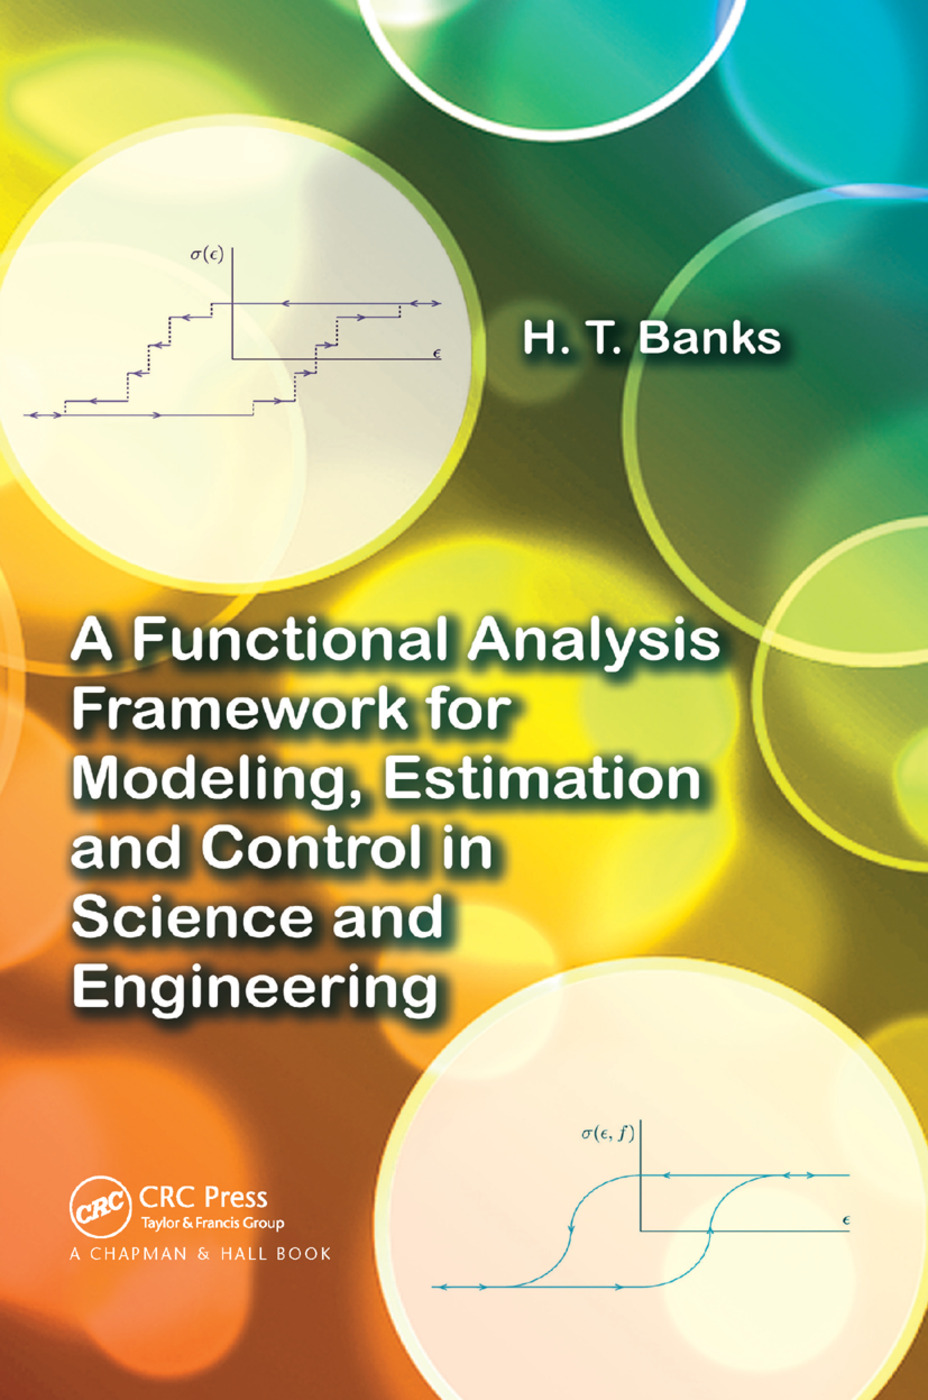 A Functional Analysis Framework for Modeling, Estimation and Control in Science and Engineering